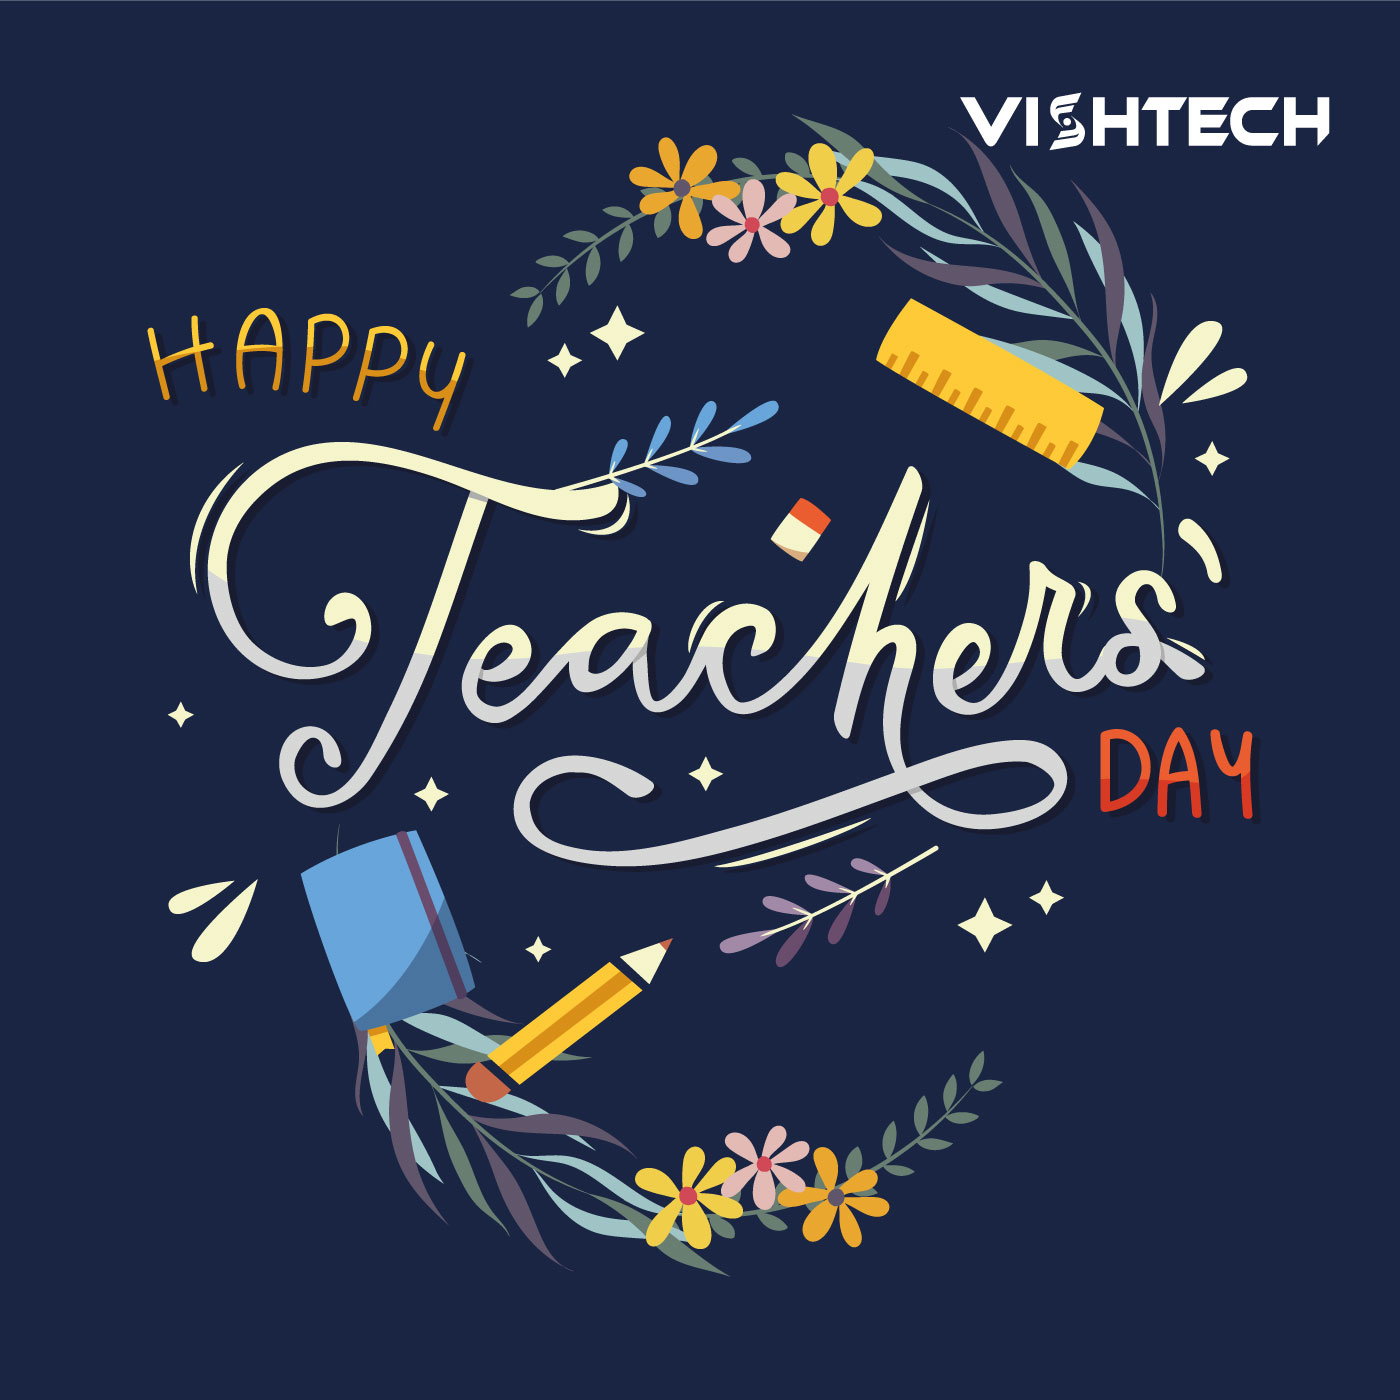 Happy Teachers Day to All Teachers.